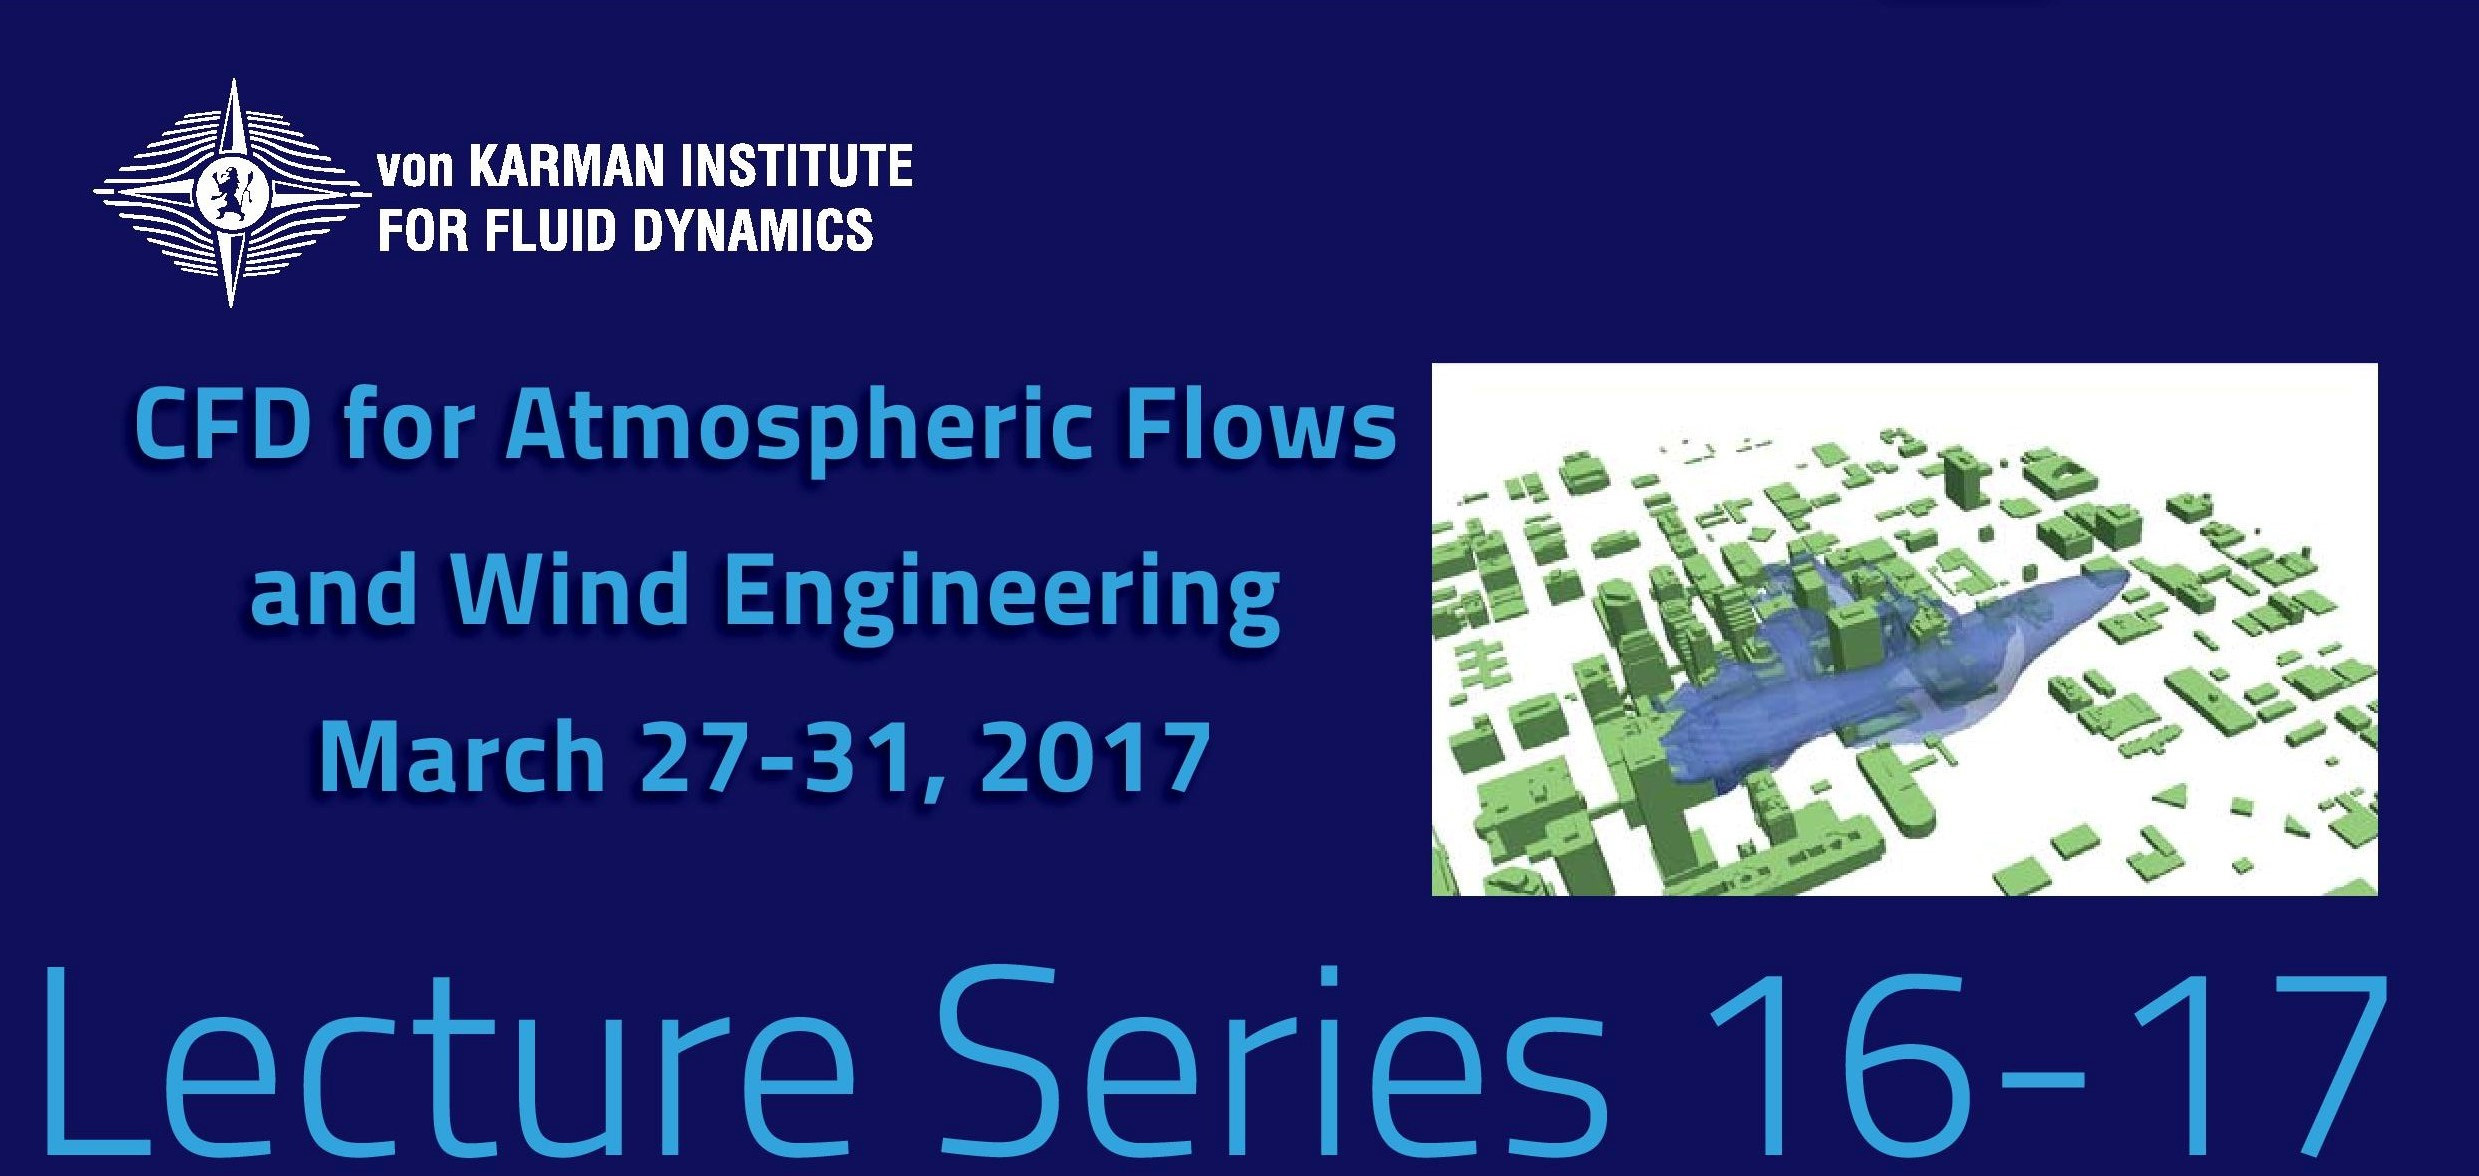 Uncertainty quantification for atmospheric boundary layer flows - Part I: Definitions, concepts, and methods - GORLÉ, C.